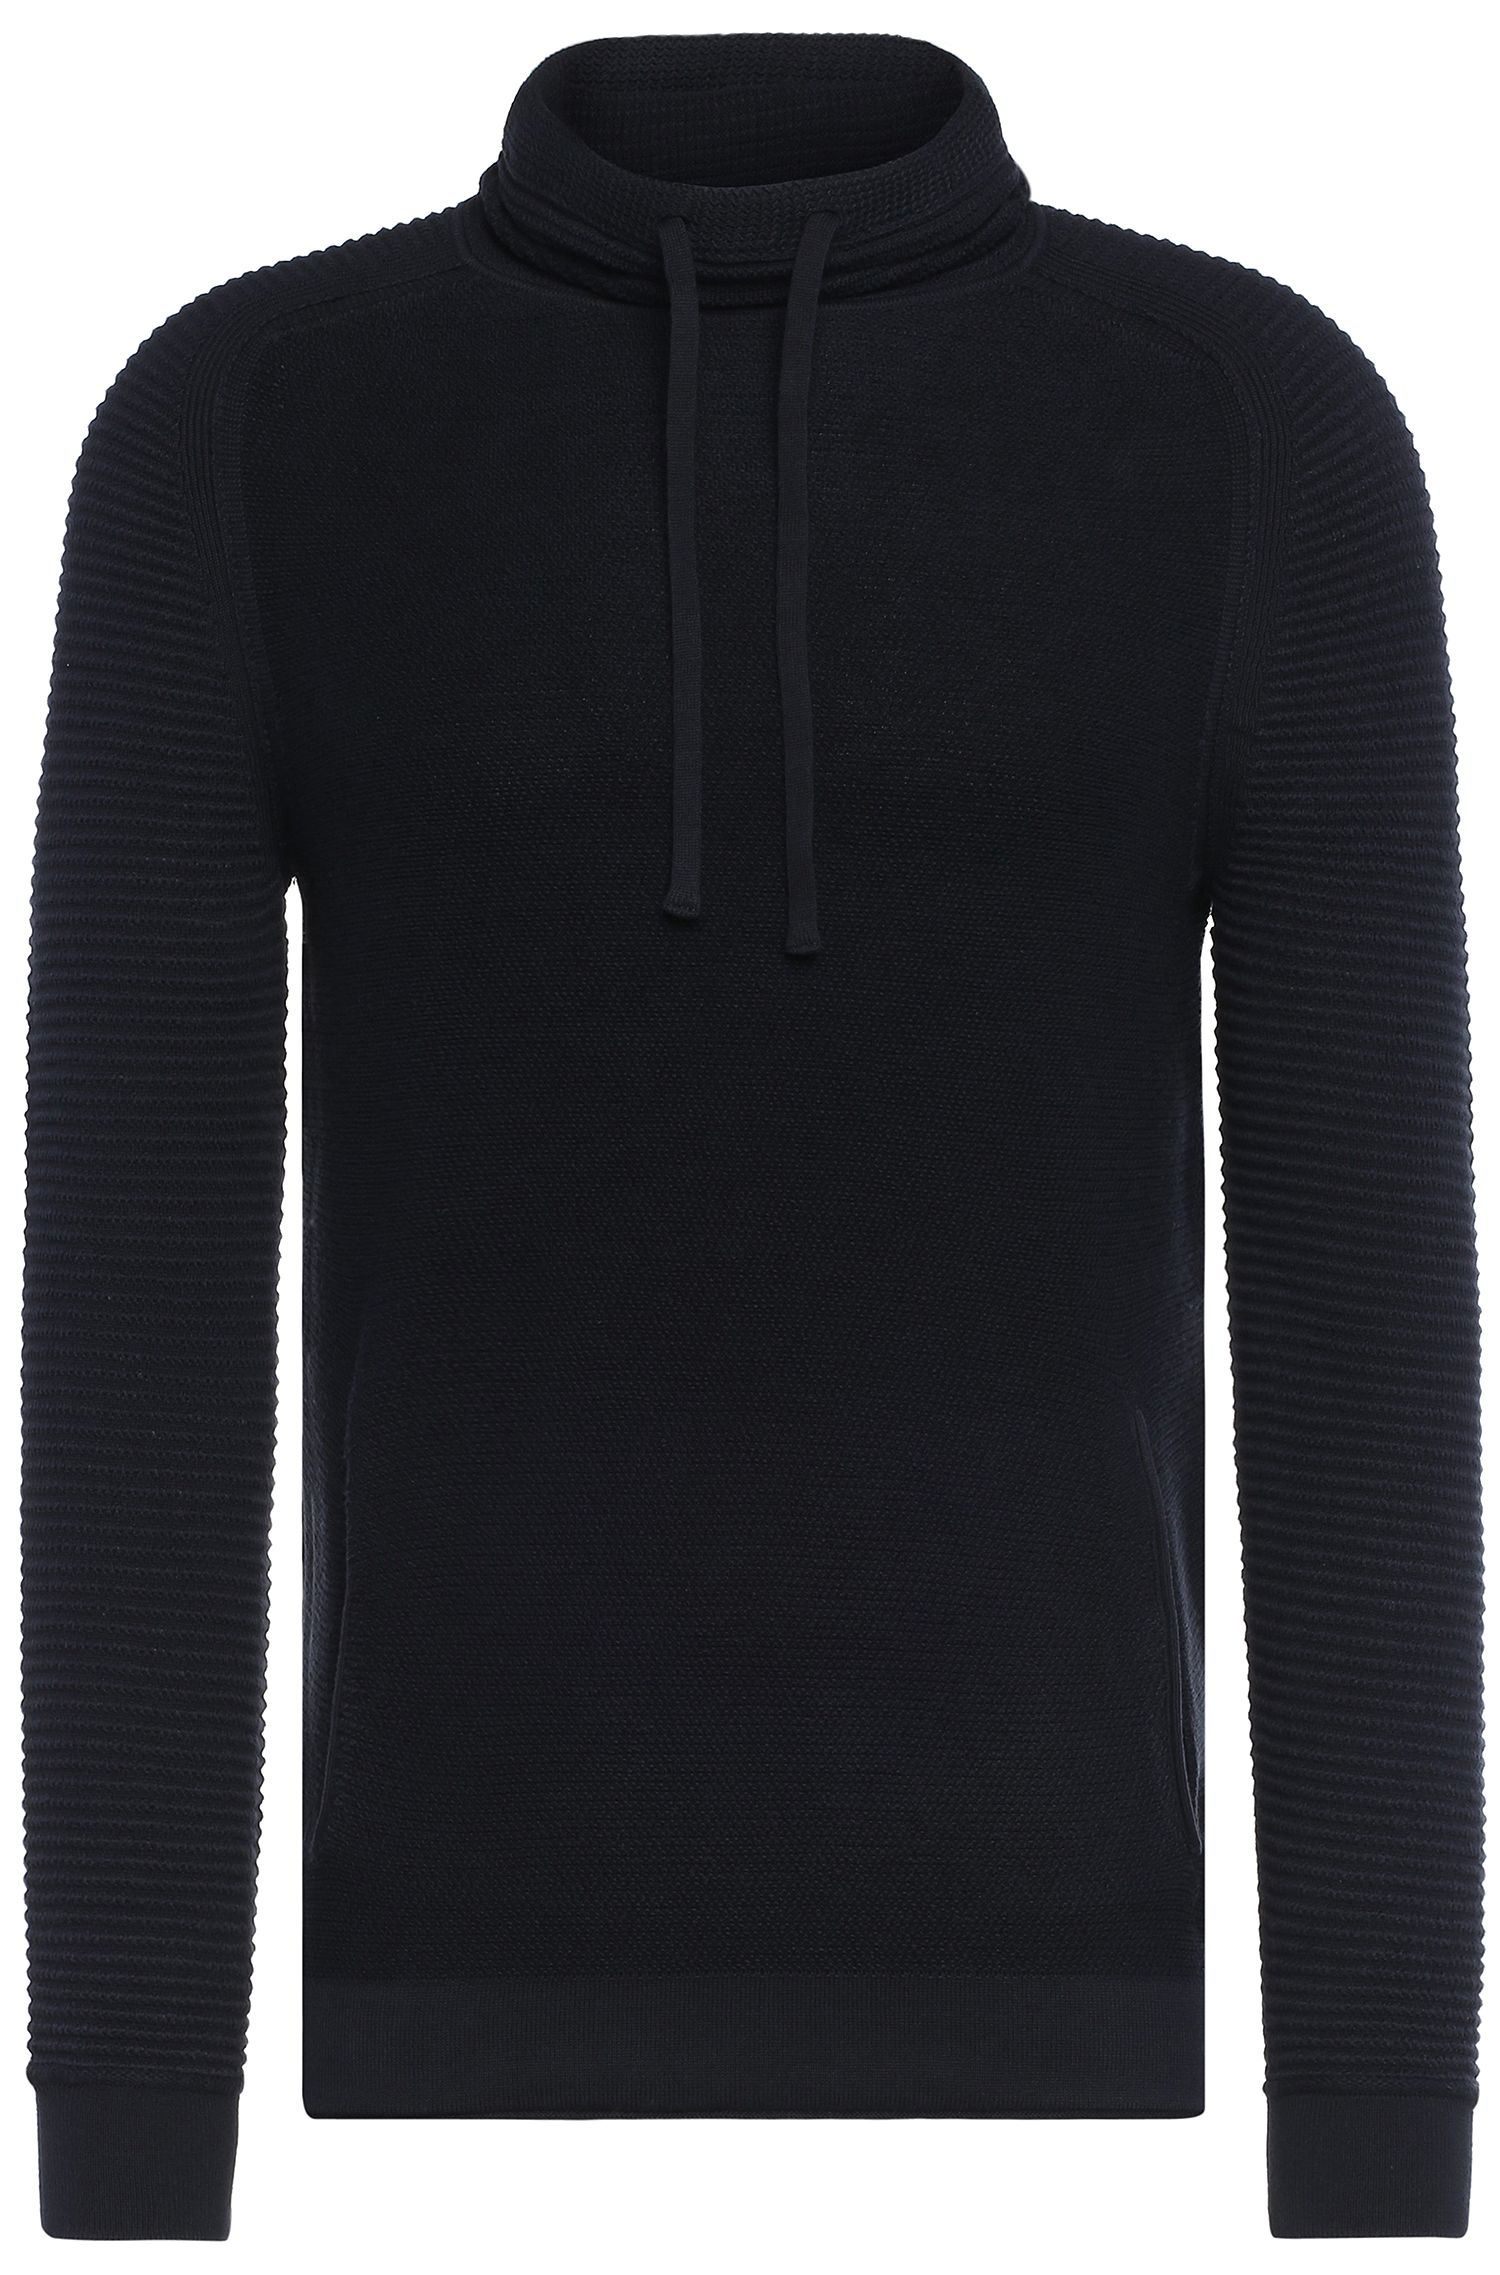 'Keno' | Stretch Cotton Funnel Neck Sweater